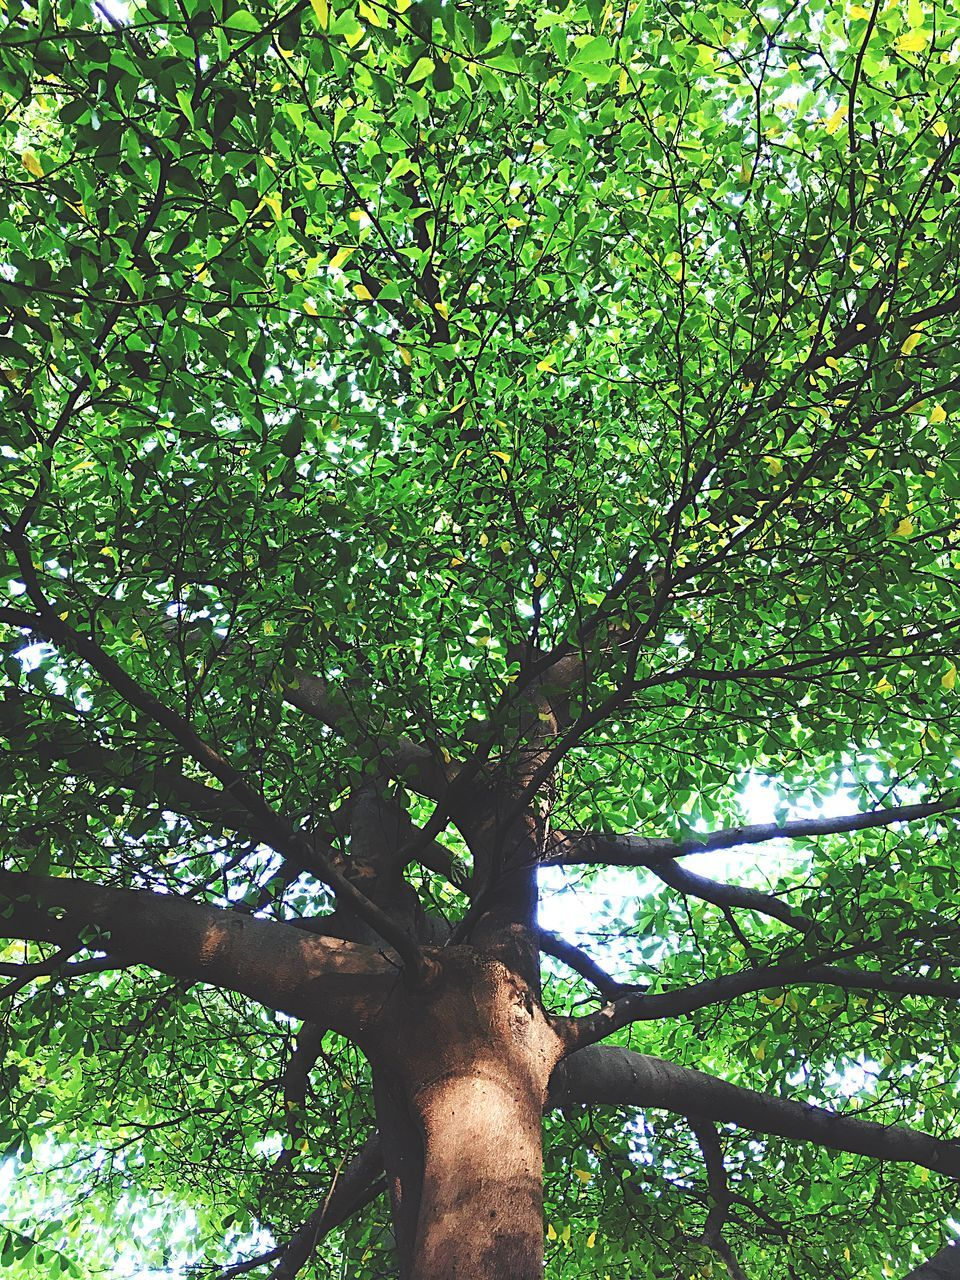 tree, tree trunk, nature, growth, branch, low angle view, green color, day, tranquility, outdoors, beauty in nature, no people, forest